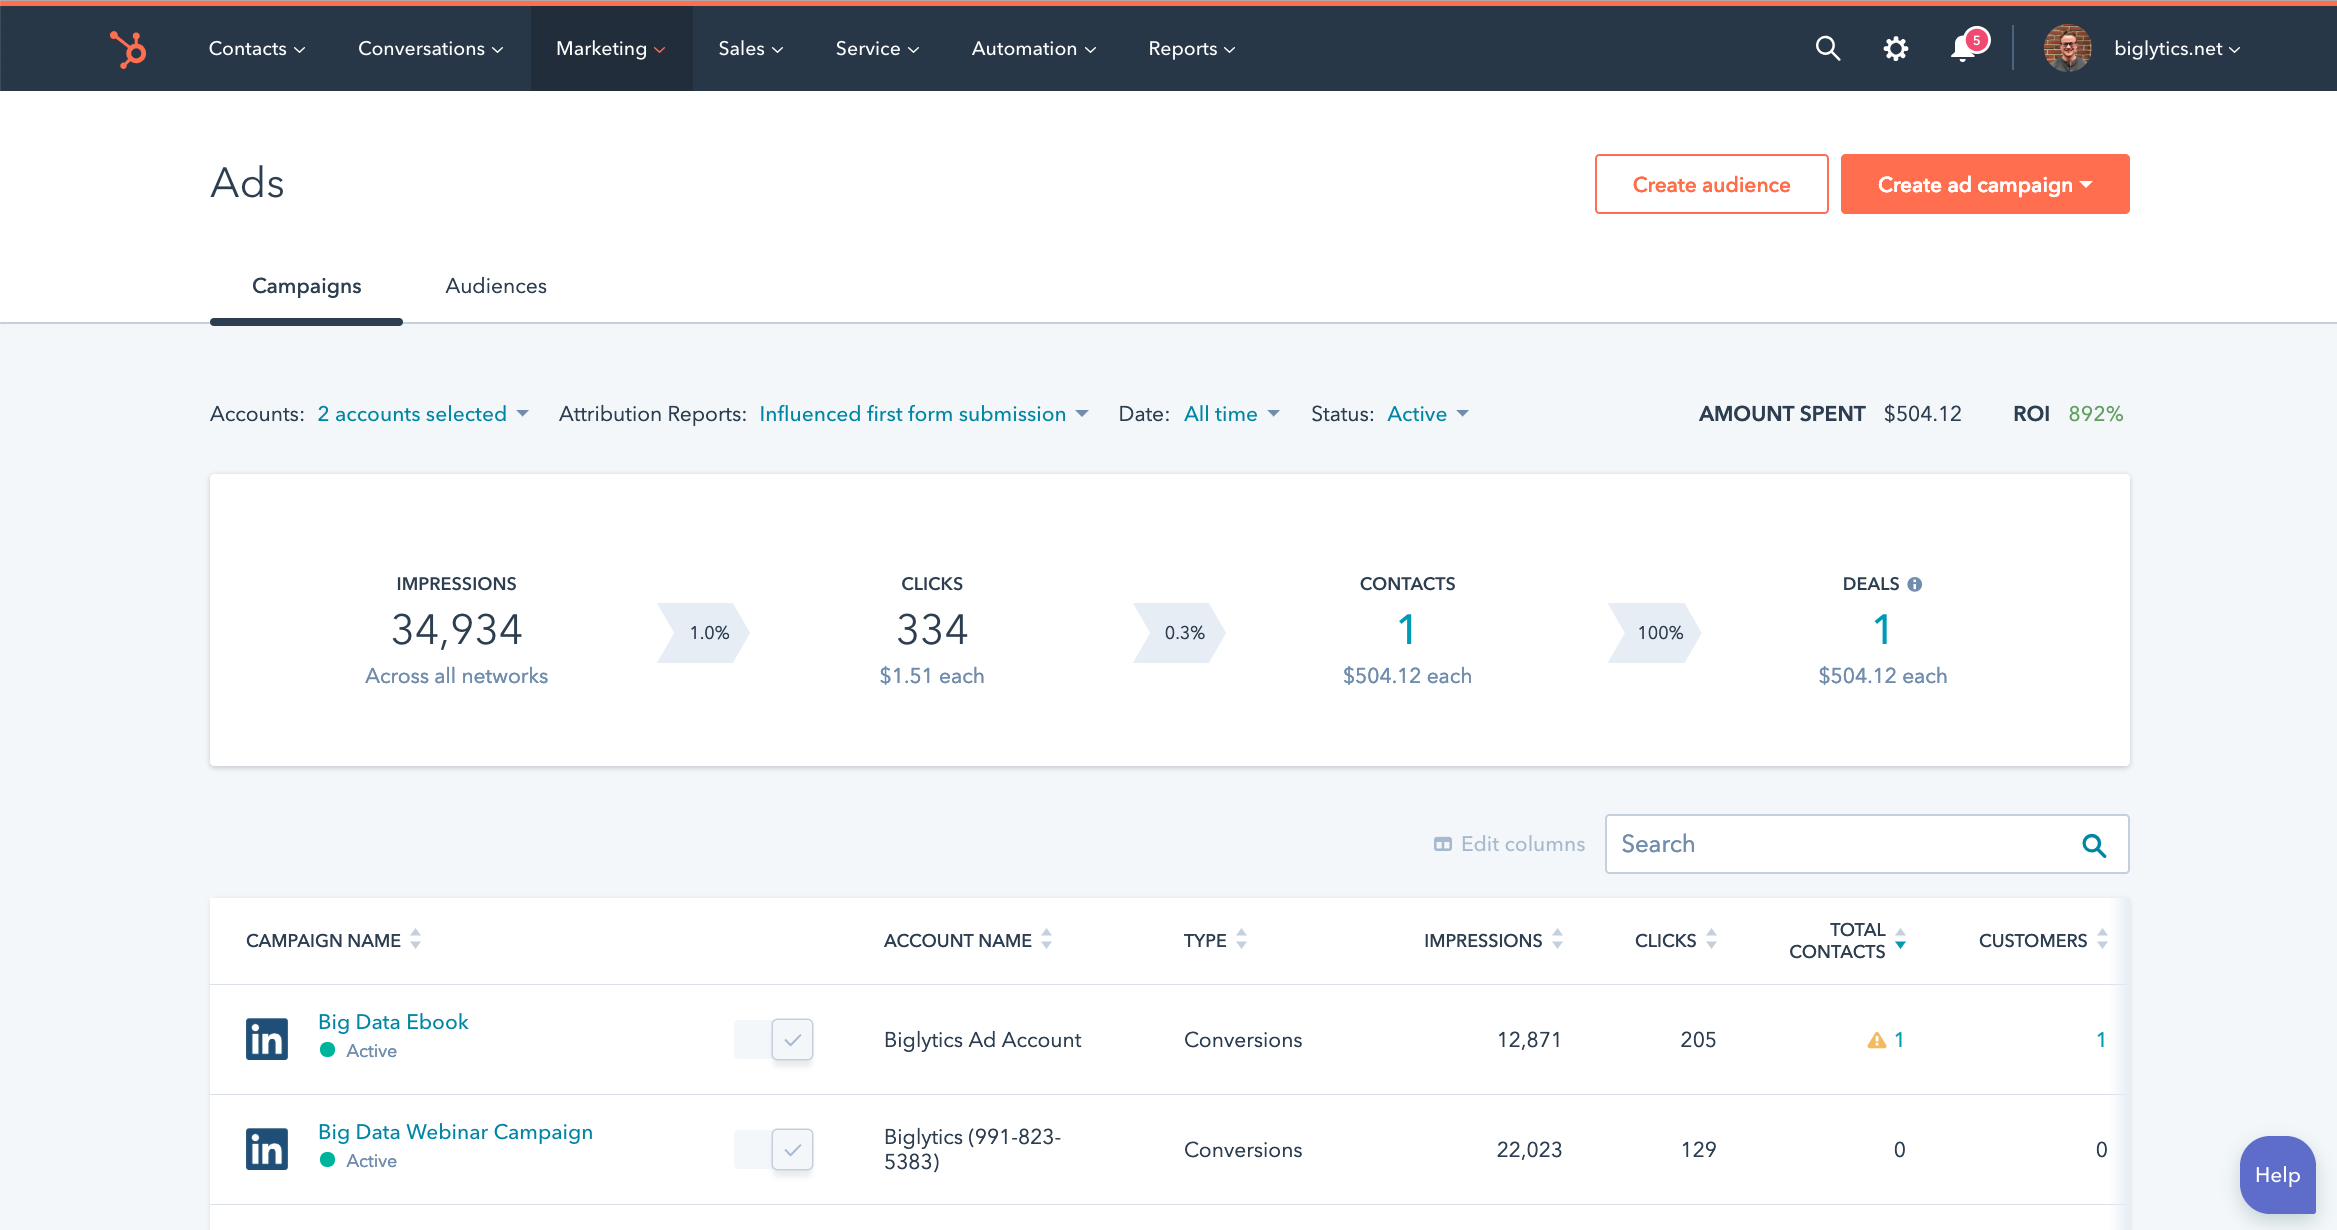 HubSpot Integrates LinkedIn Ads into Professional and Enterprise Tiers of Marketing Hub